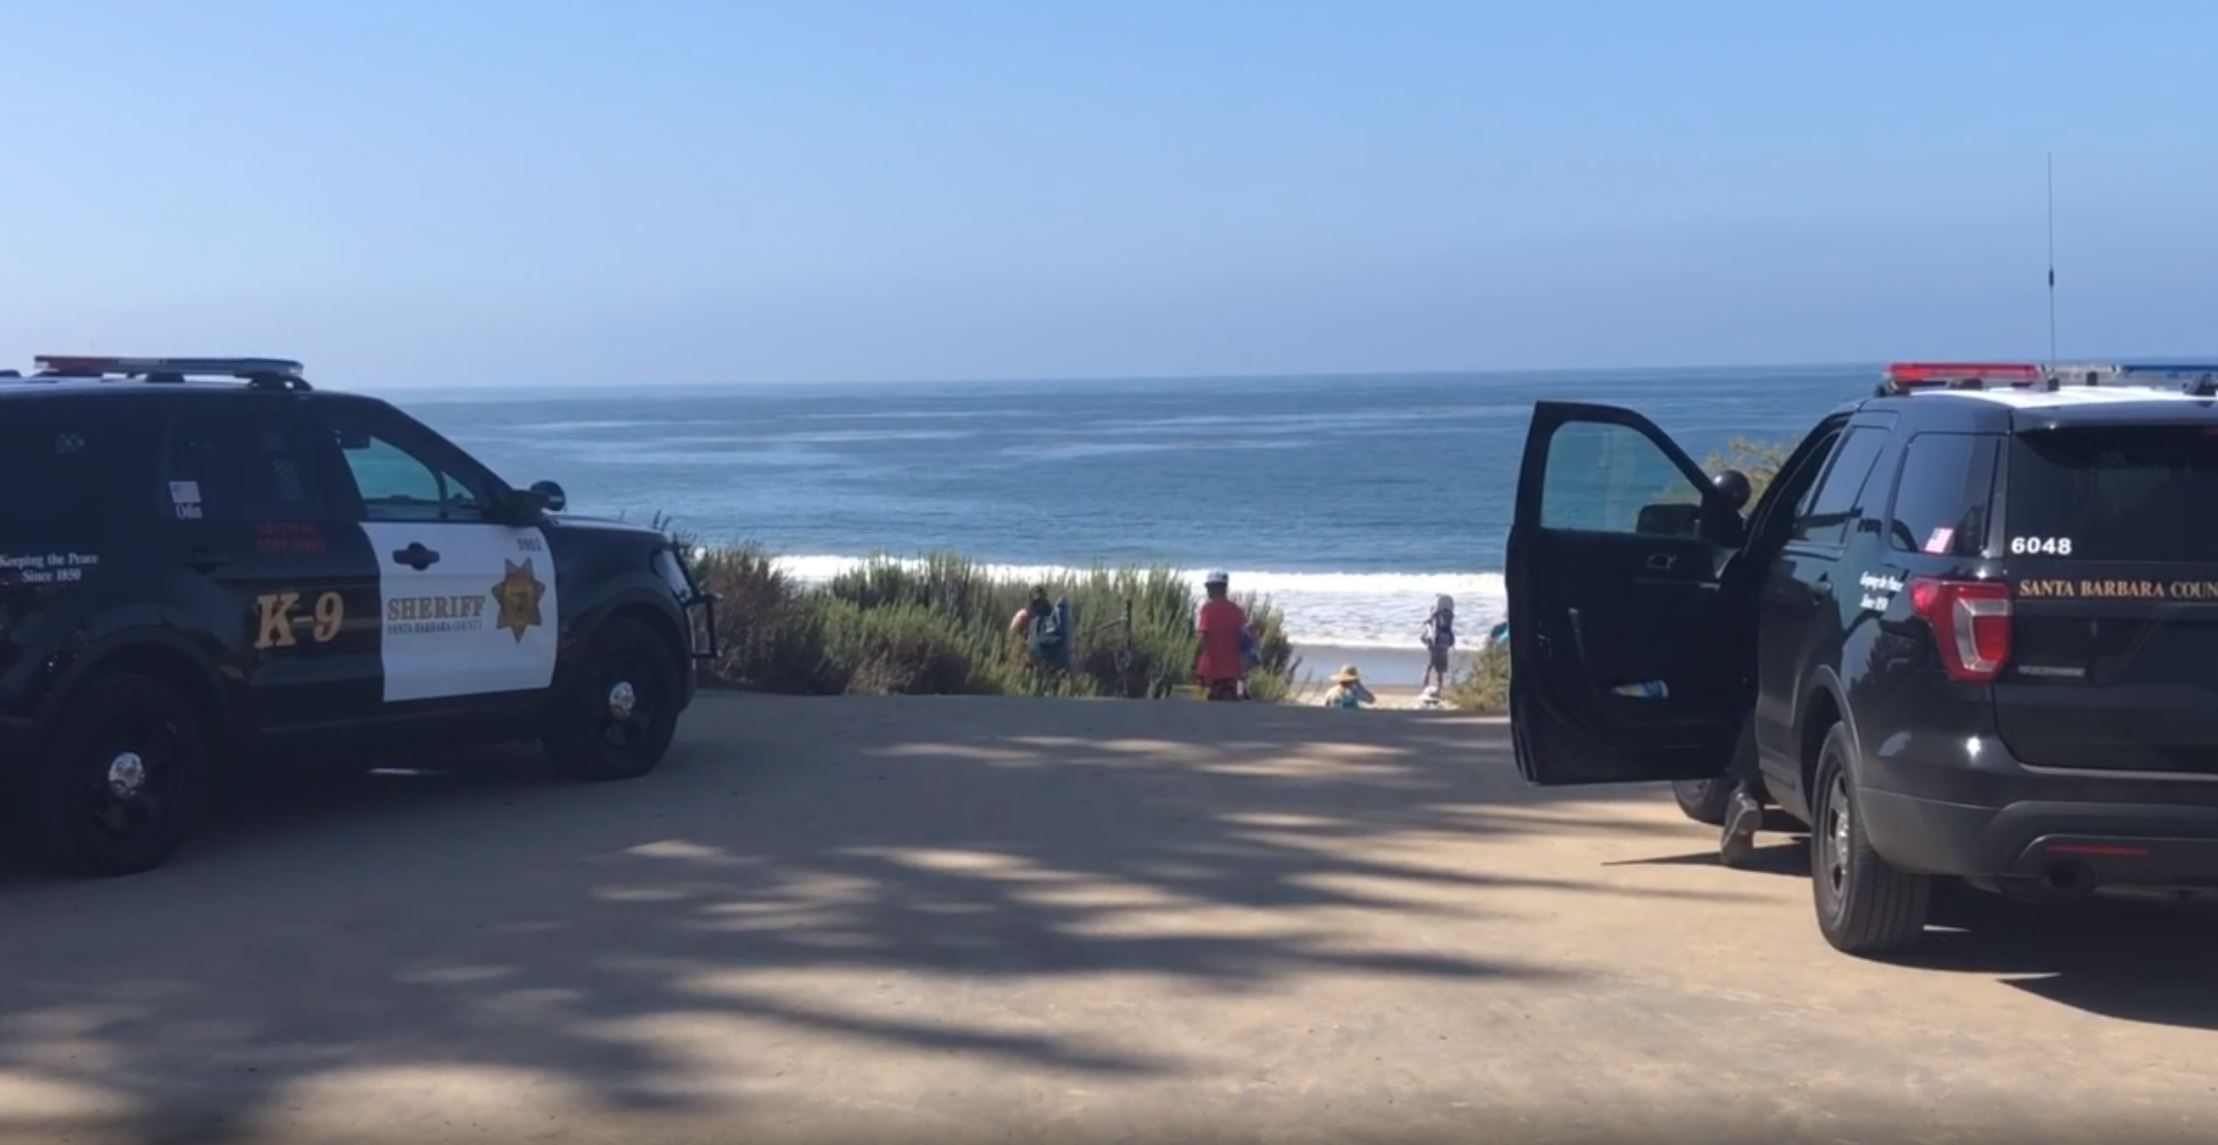 Deputies searching for suspect after attempted robbery near Ellwood Bluffs in Goleta - NewsChannel 3-12